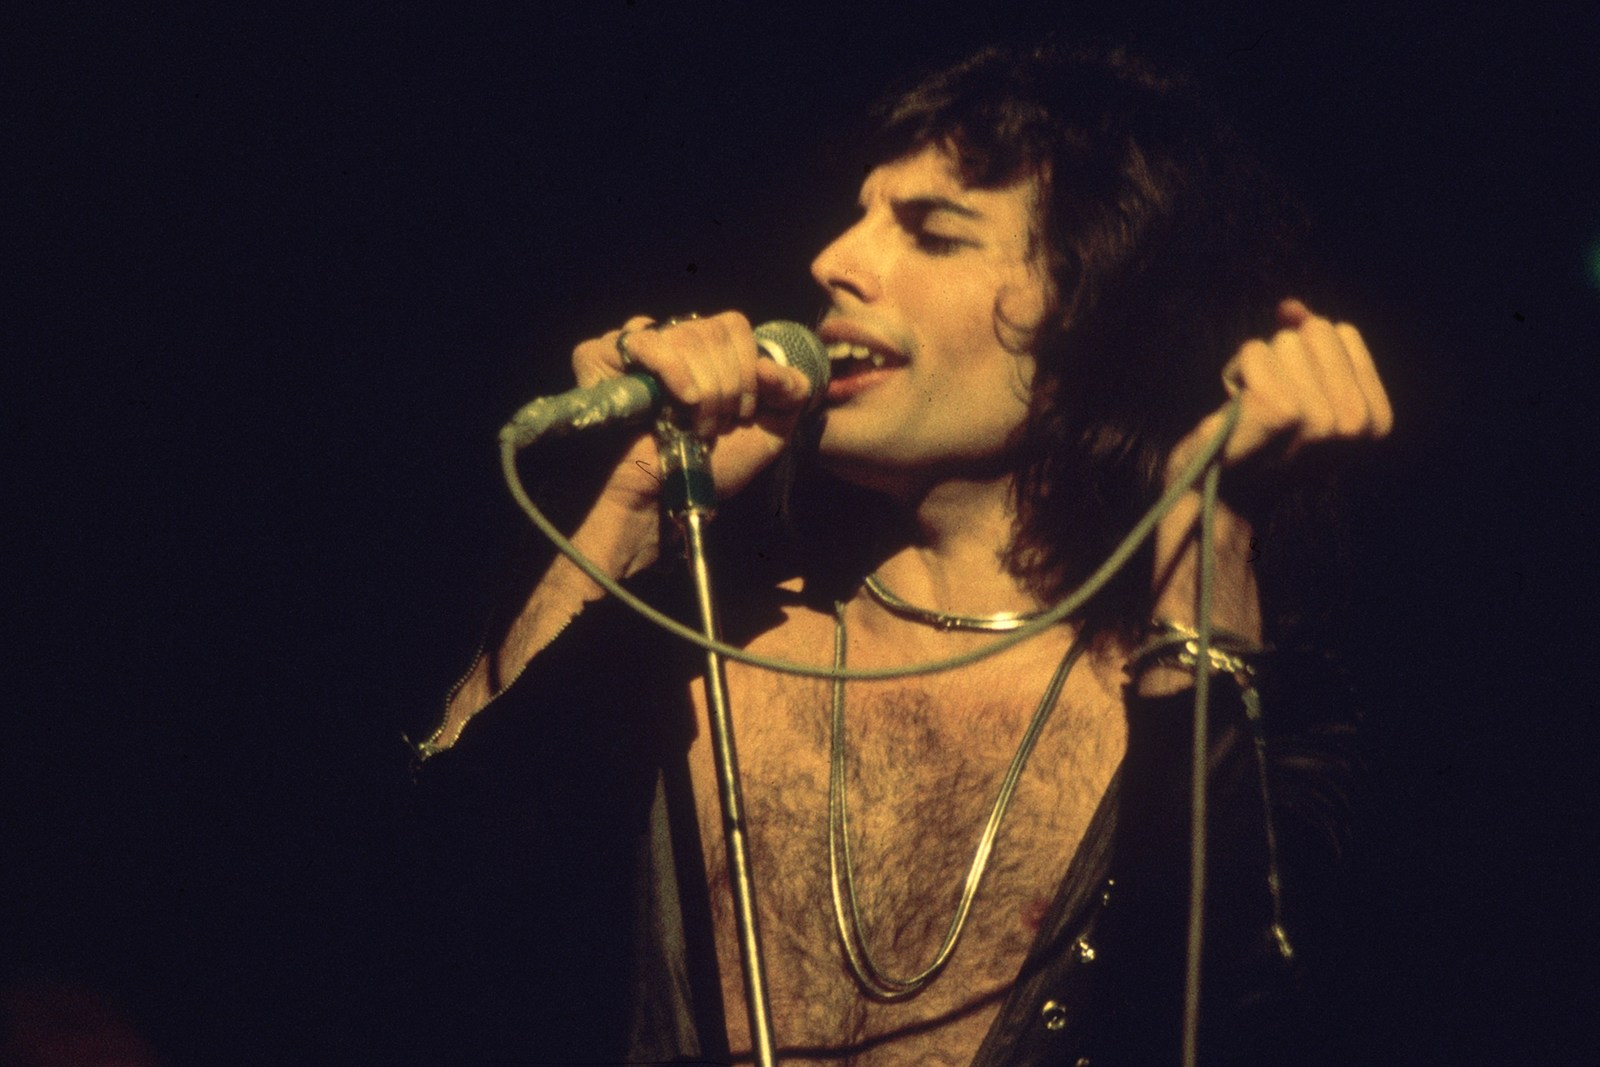 Queen's 'Bohemian Rhapsody' Returns to Hot 100 for Third Time